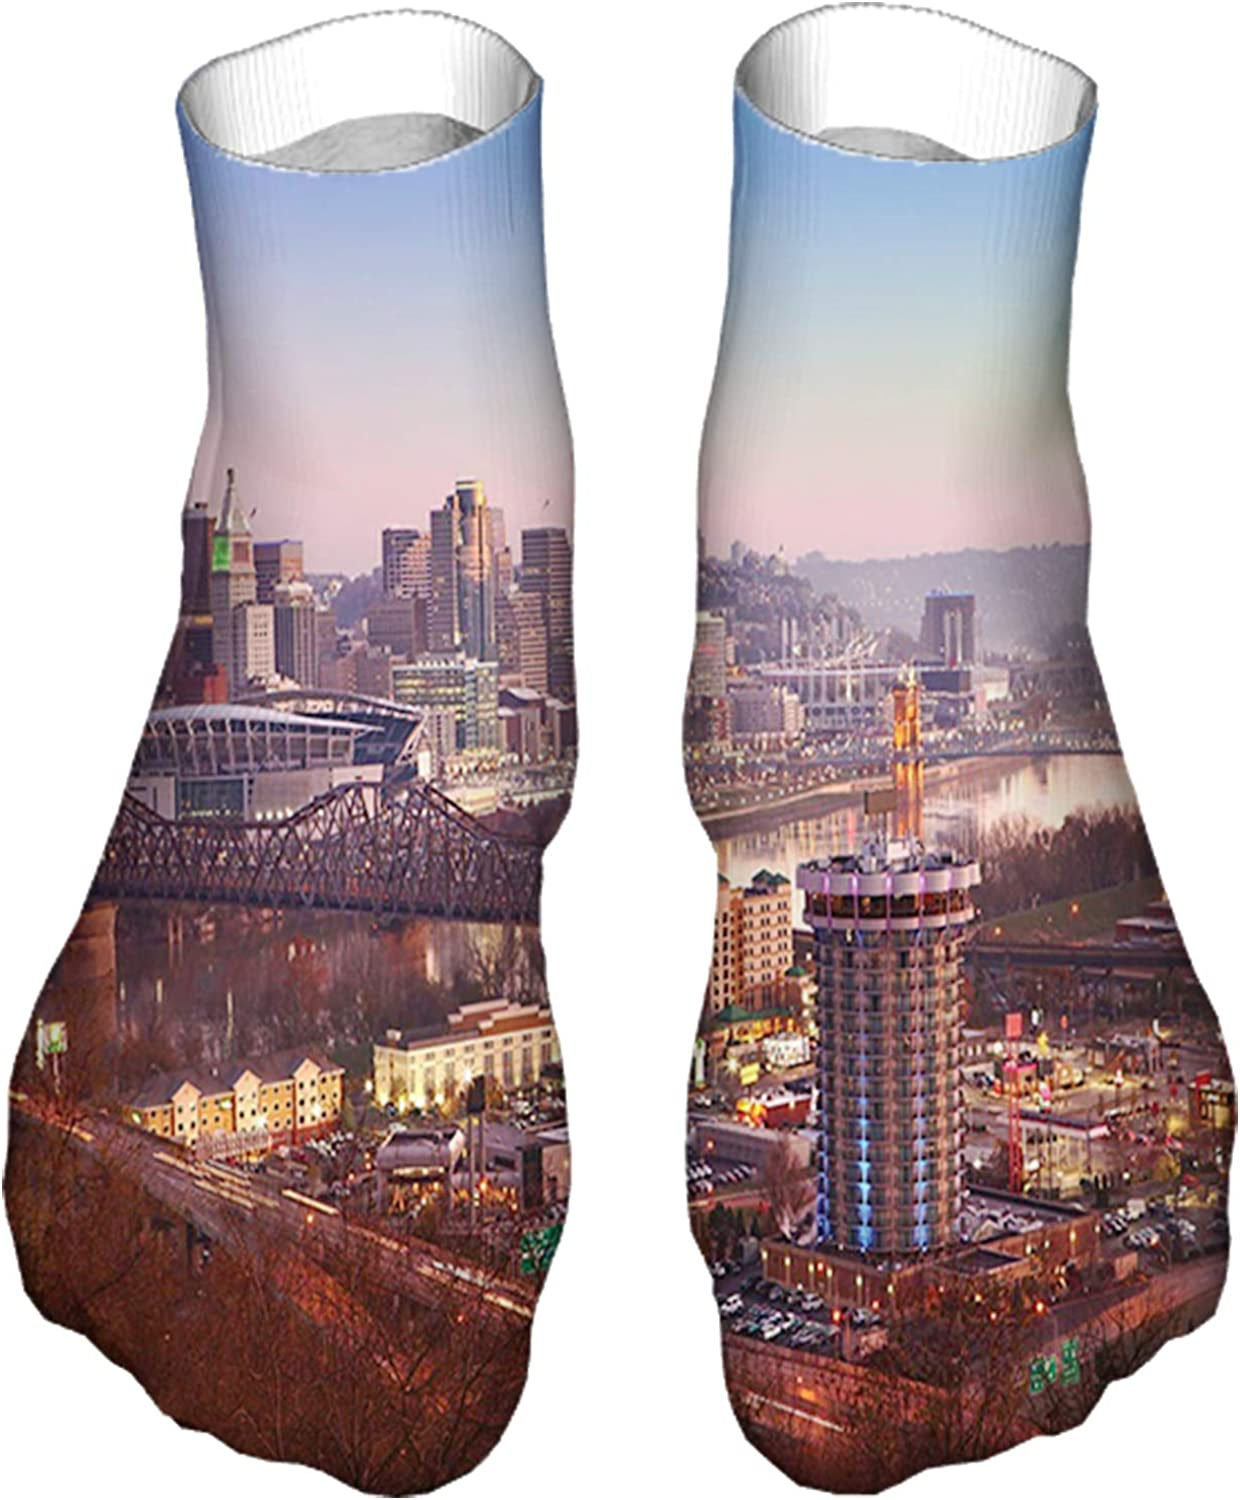 Men's and Women's Fun Socks Printed Cool Novelty Funny Socks,Center of The City in Violet Tones Transition Memorial